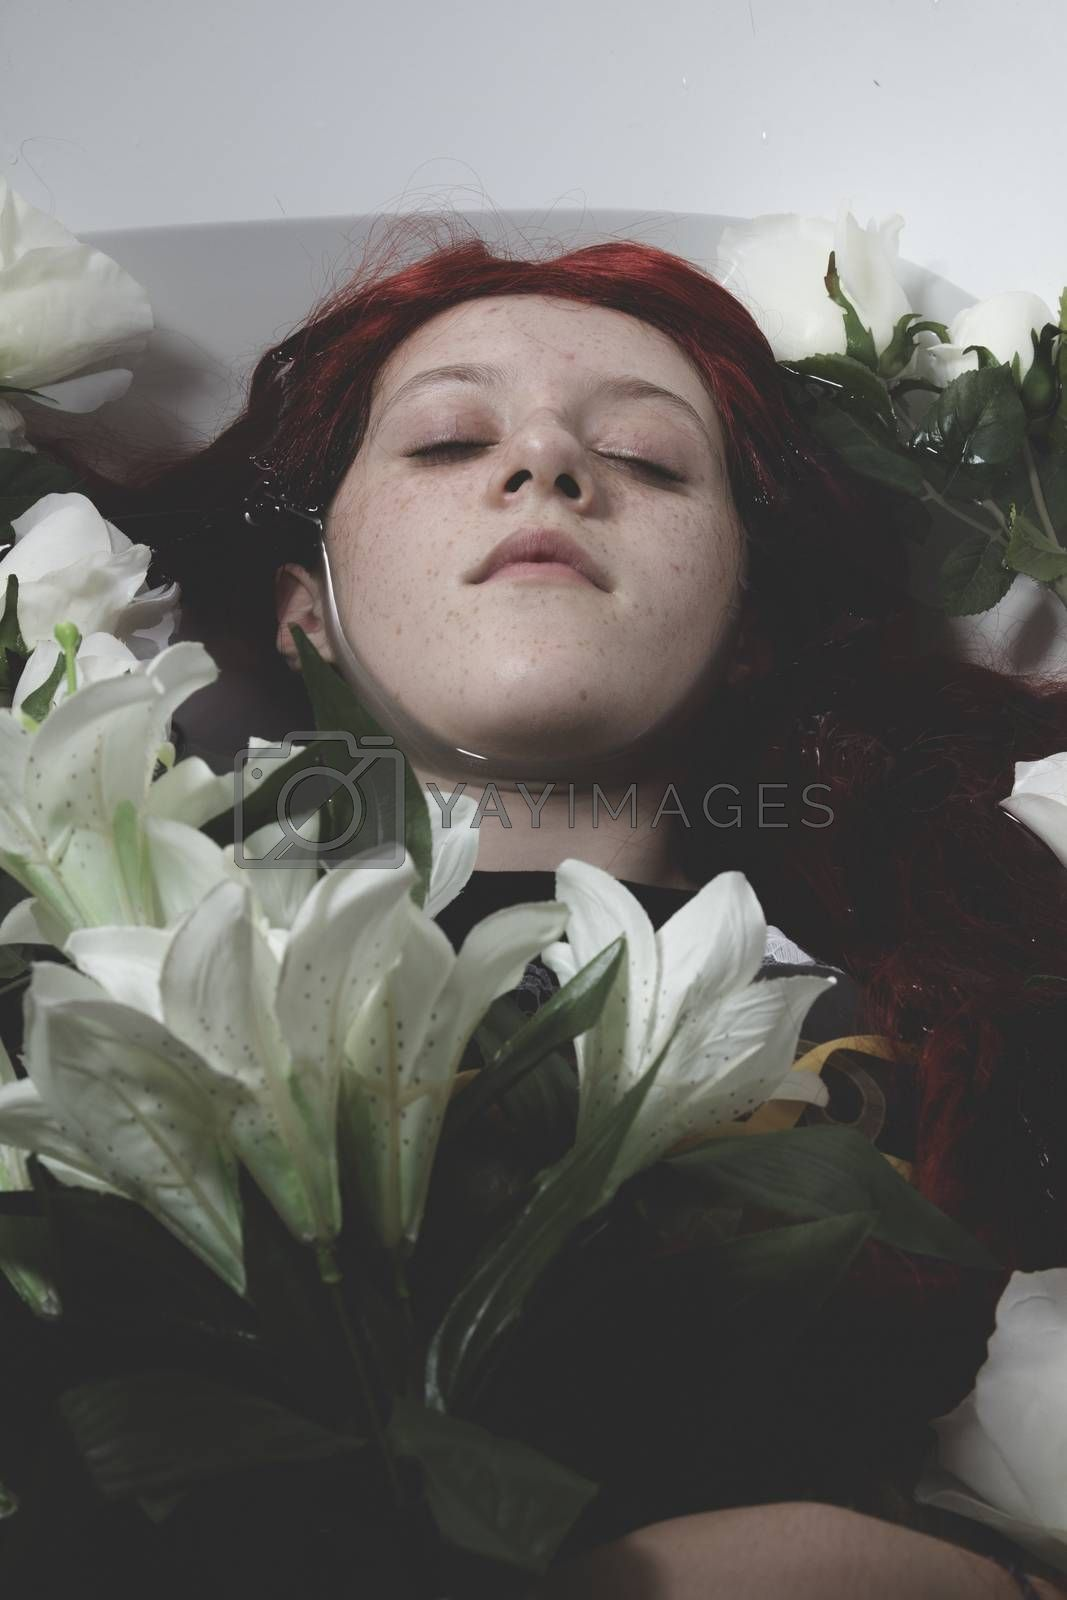 Fashion, Teen submerged in water with white roses, romance scene